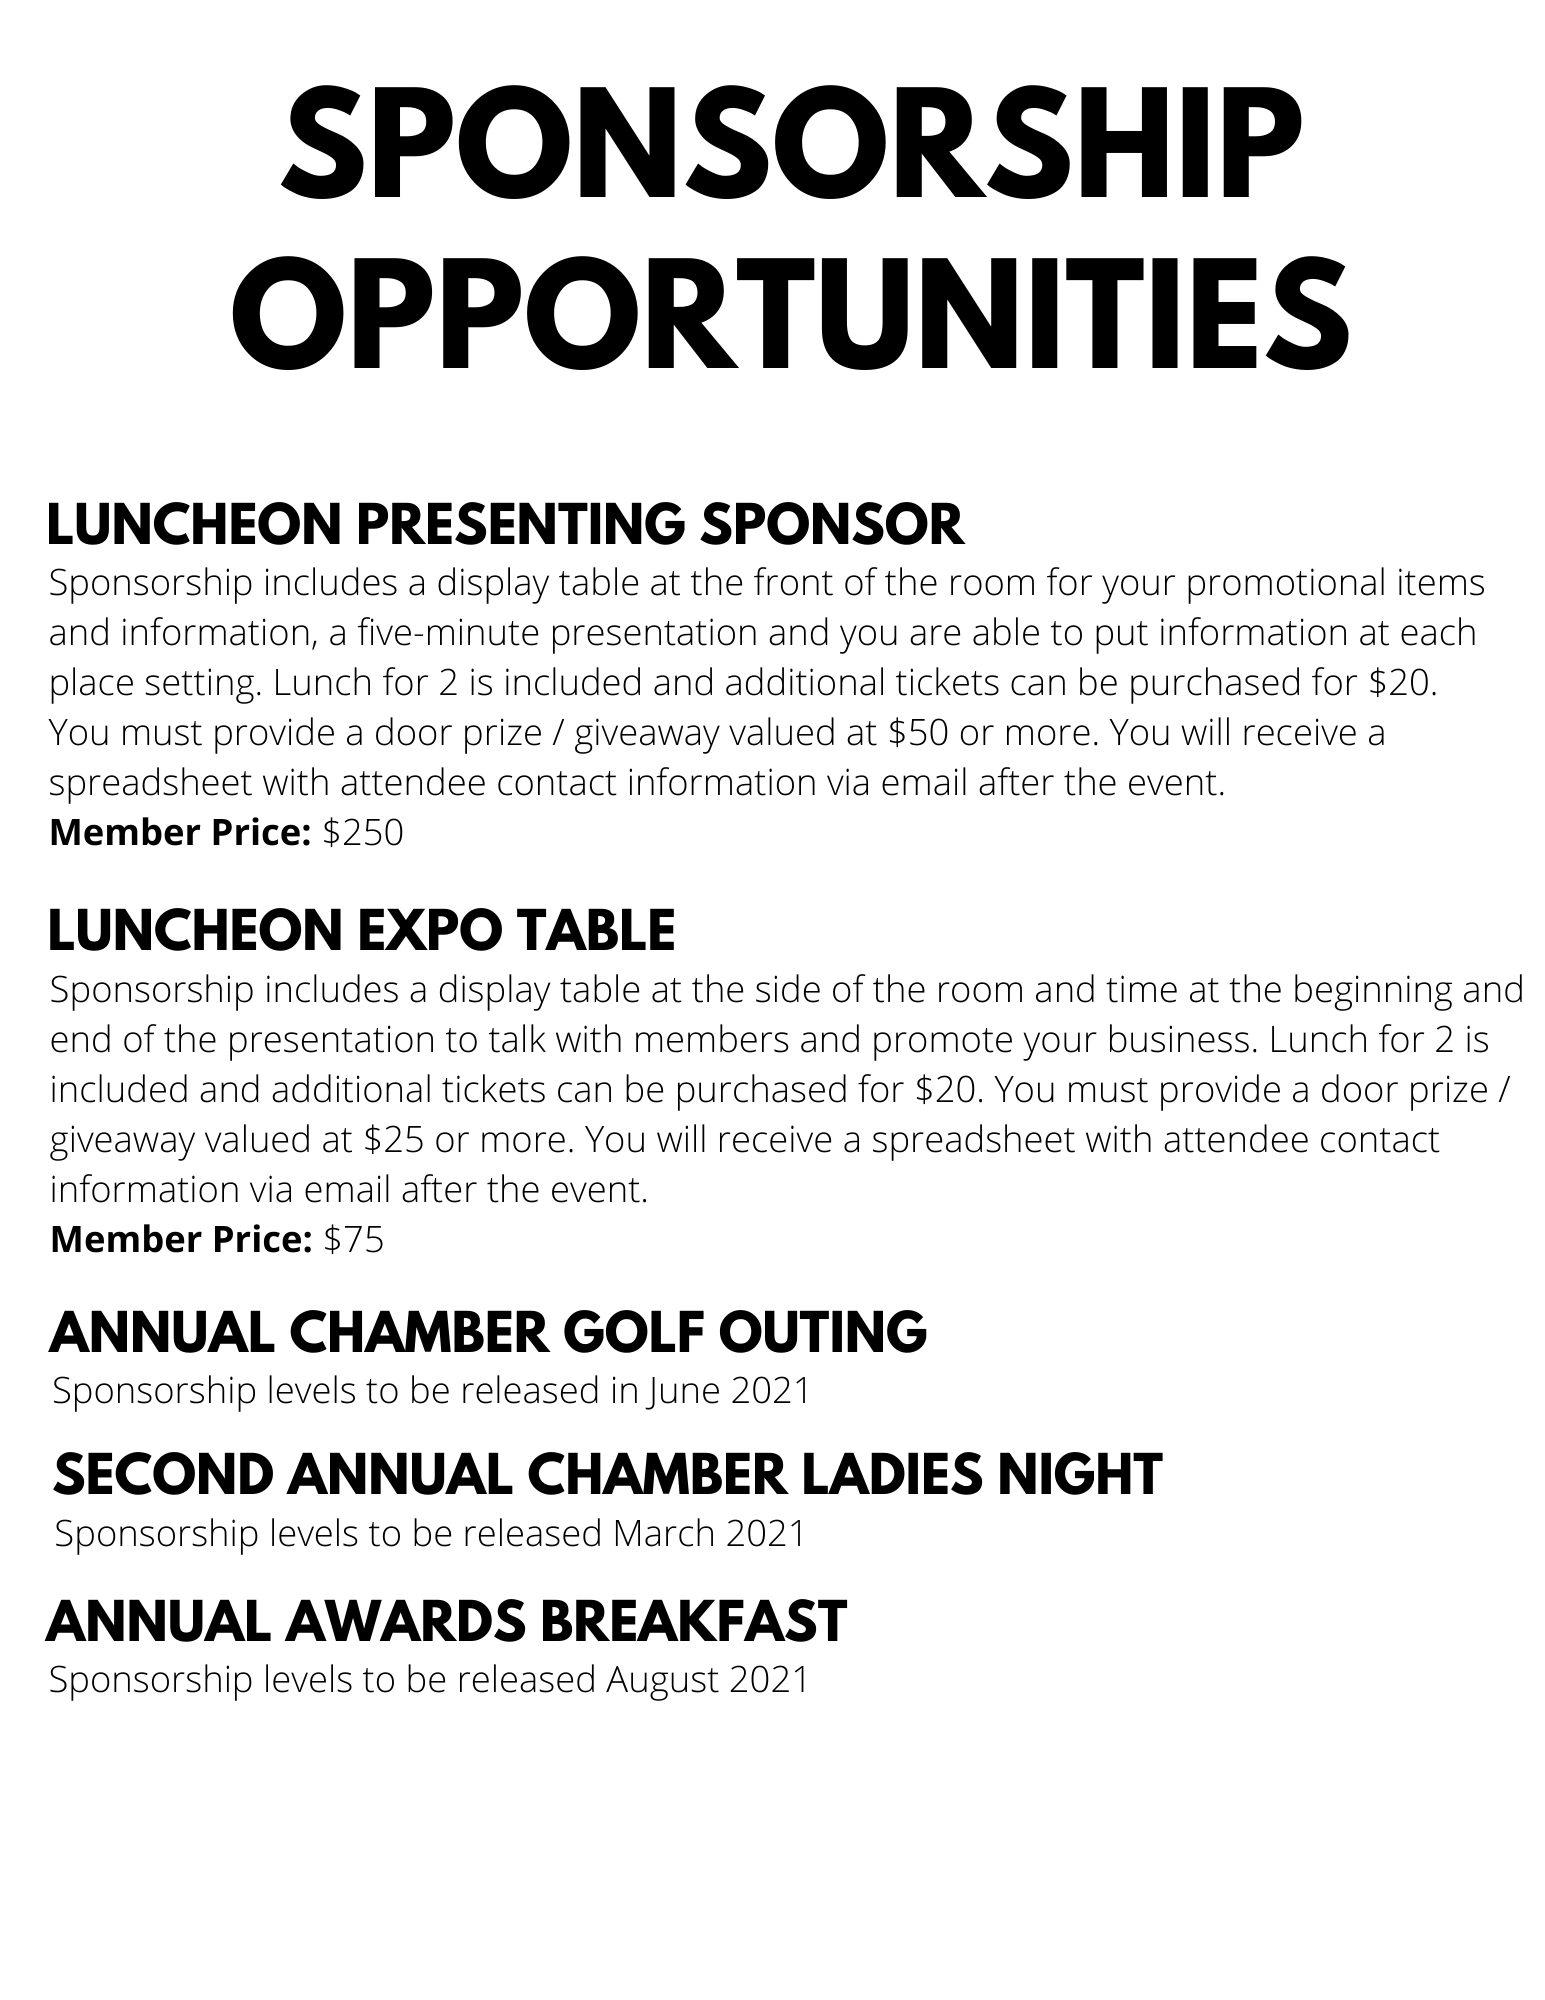 sponsorship-opportunities(1).png